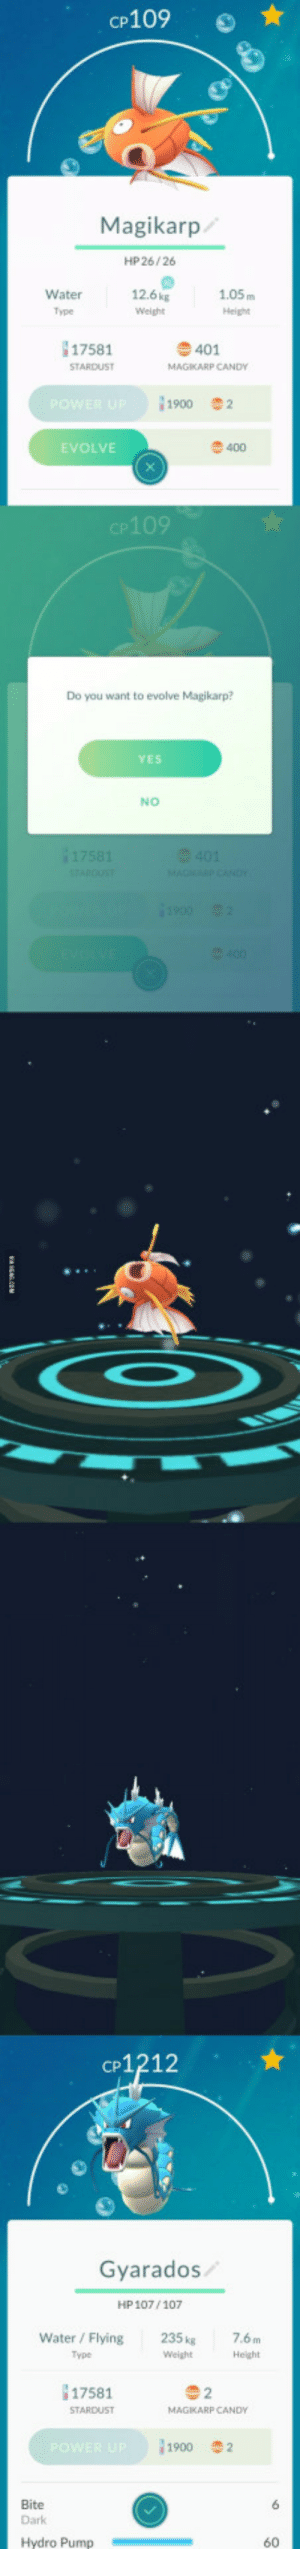 The very definition of worth it.: CP109  Magikarp/  HP 26/26  Water  Type  12.6kg  Weight  1.05m  Height  17581  401  1900  2  EVOLVE  400  p109  Do you want to evolve Magikarp?  YES  NO  cP1212  Gyarados  HP 107/107  Water / Flying  Type  235 kg  Weight  7.6m  17581  MAGKARP CANDY  i1900  2  Bite  Dark  Hydro Pump  60 The very definition of worth it.